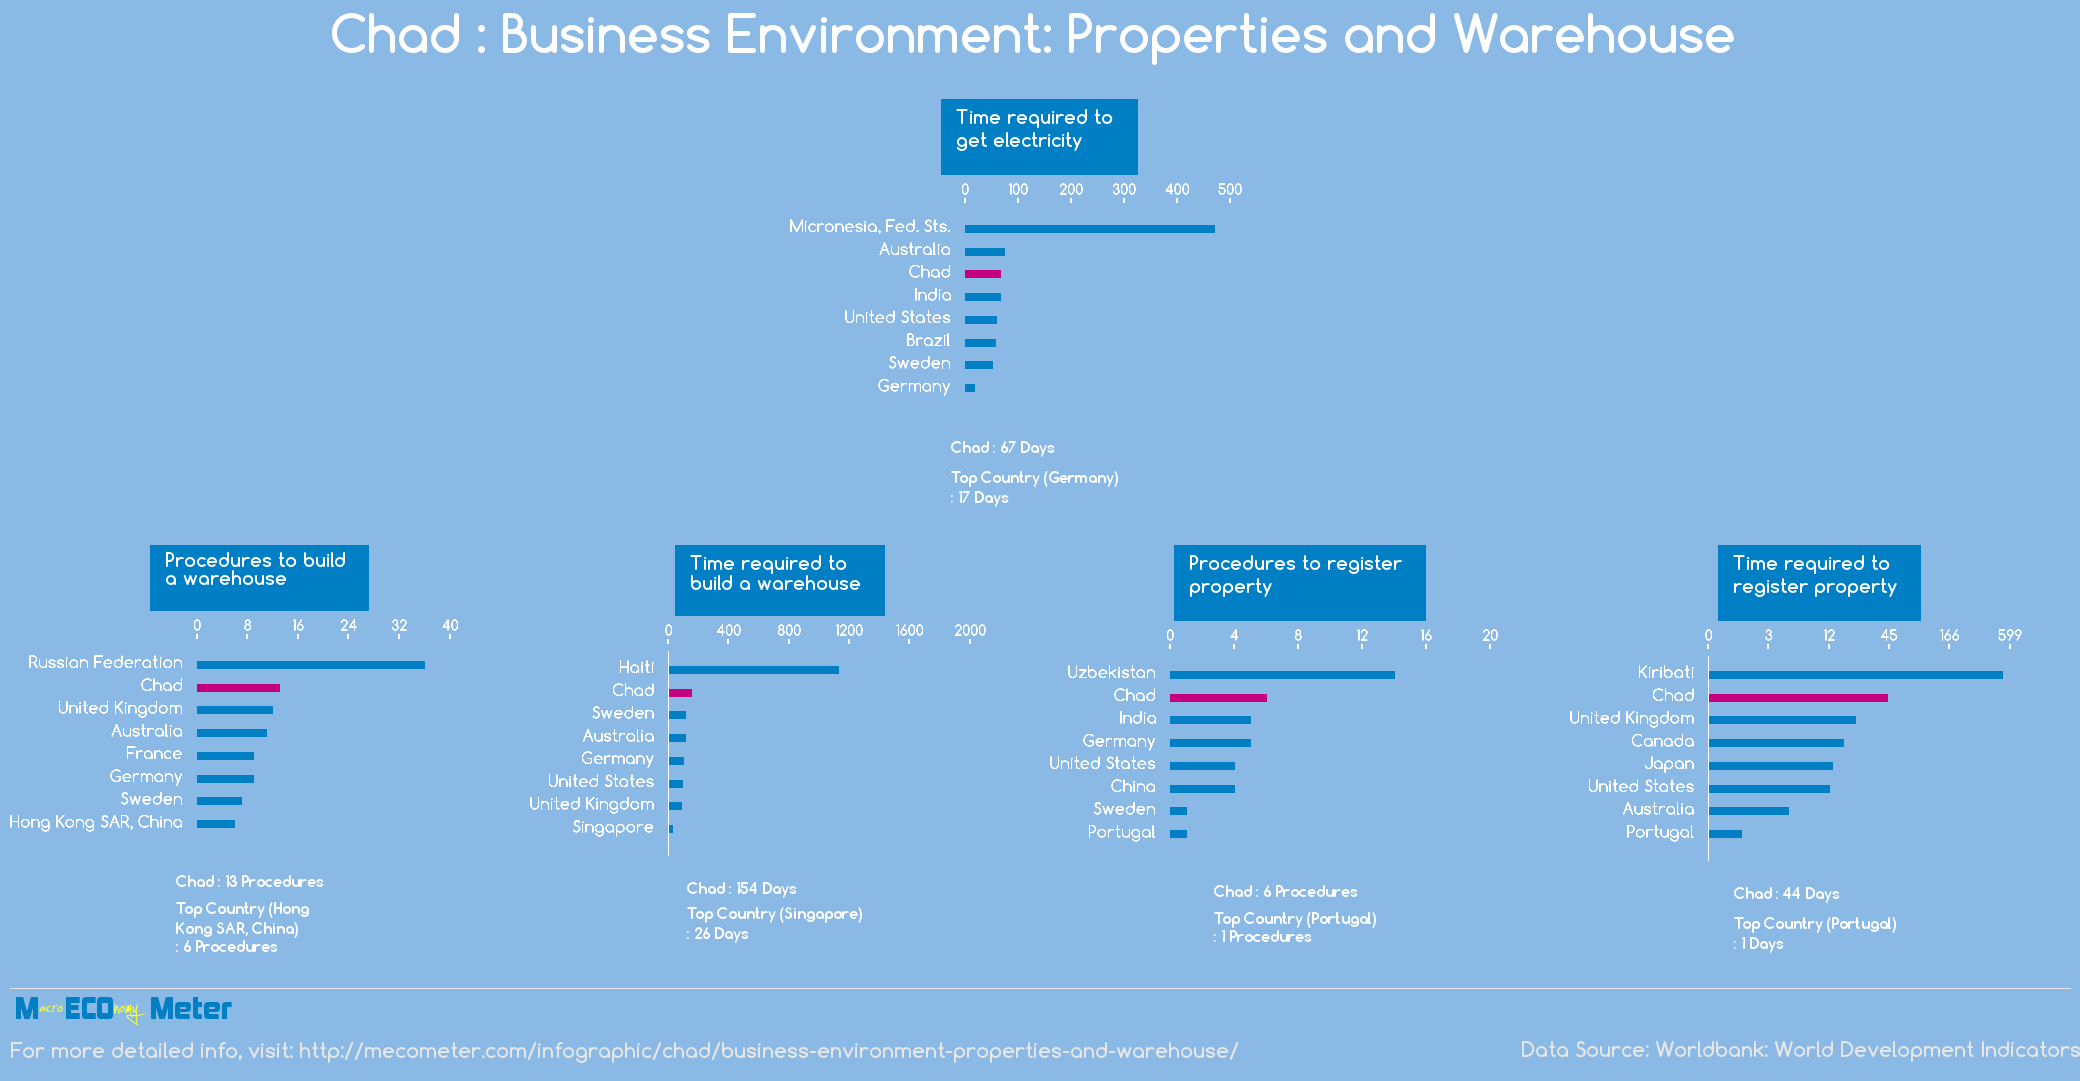 Chad : Business Environment: Properties and Warehouse